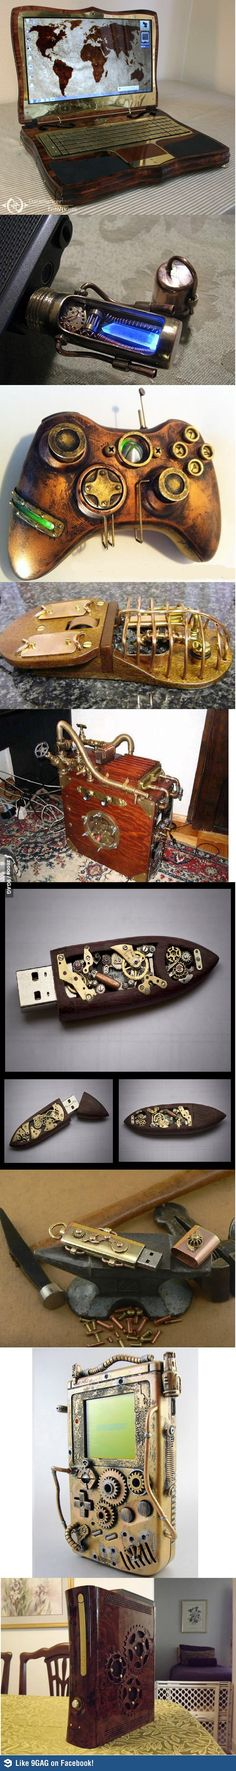 Steampunk gadgets. Love the laptop - https://plus.google.com/u/0/b/100362648855935932474/100362648855935932474/posts/p/pub